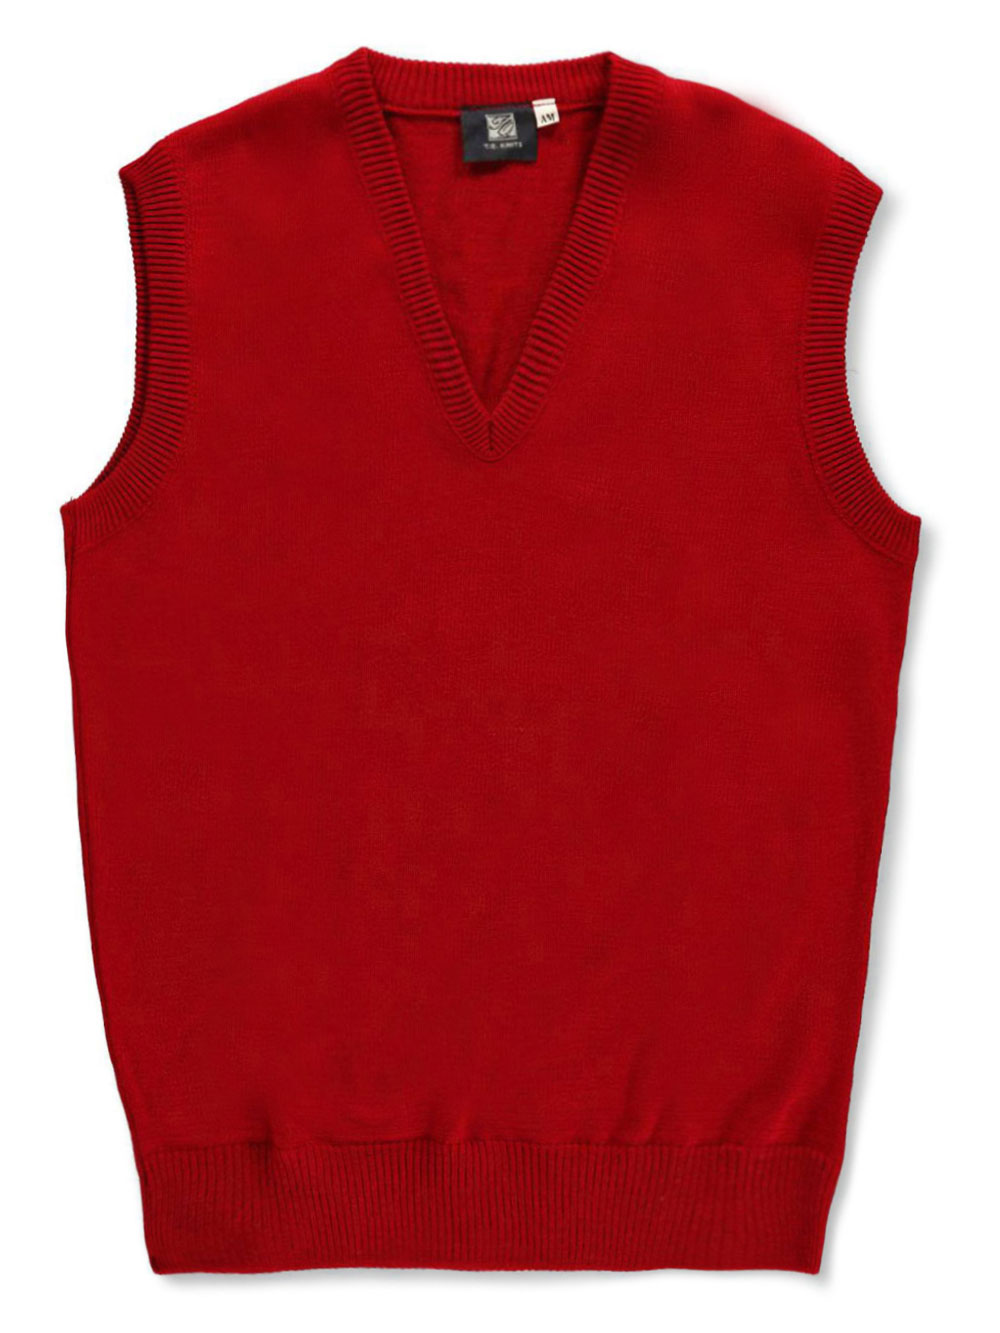 Image of T.Q. Knits Unisex Sweater Vest Adult Sizes S  XXL  red m